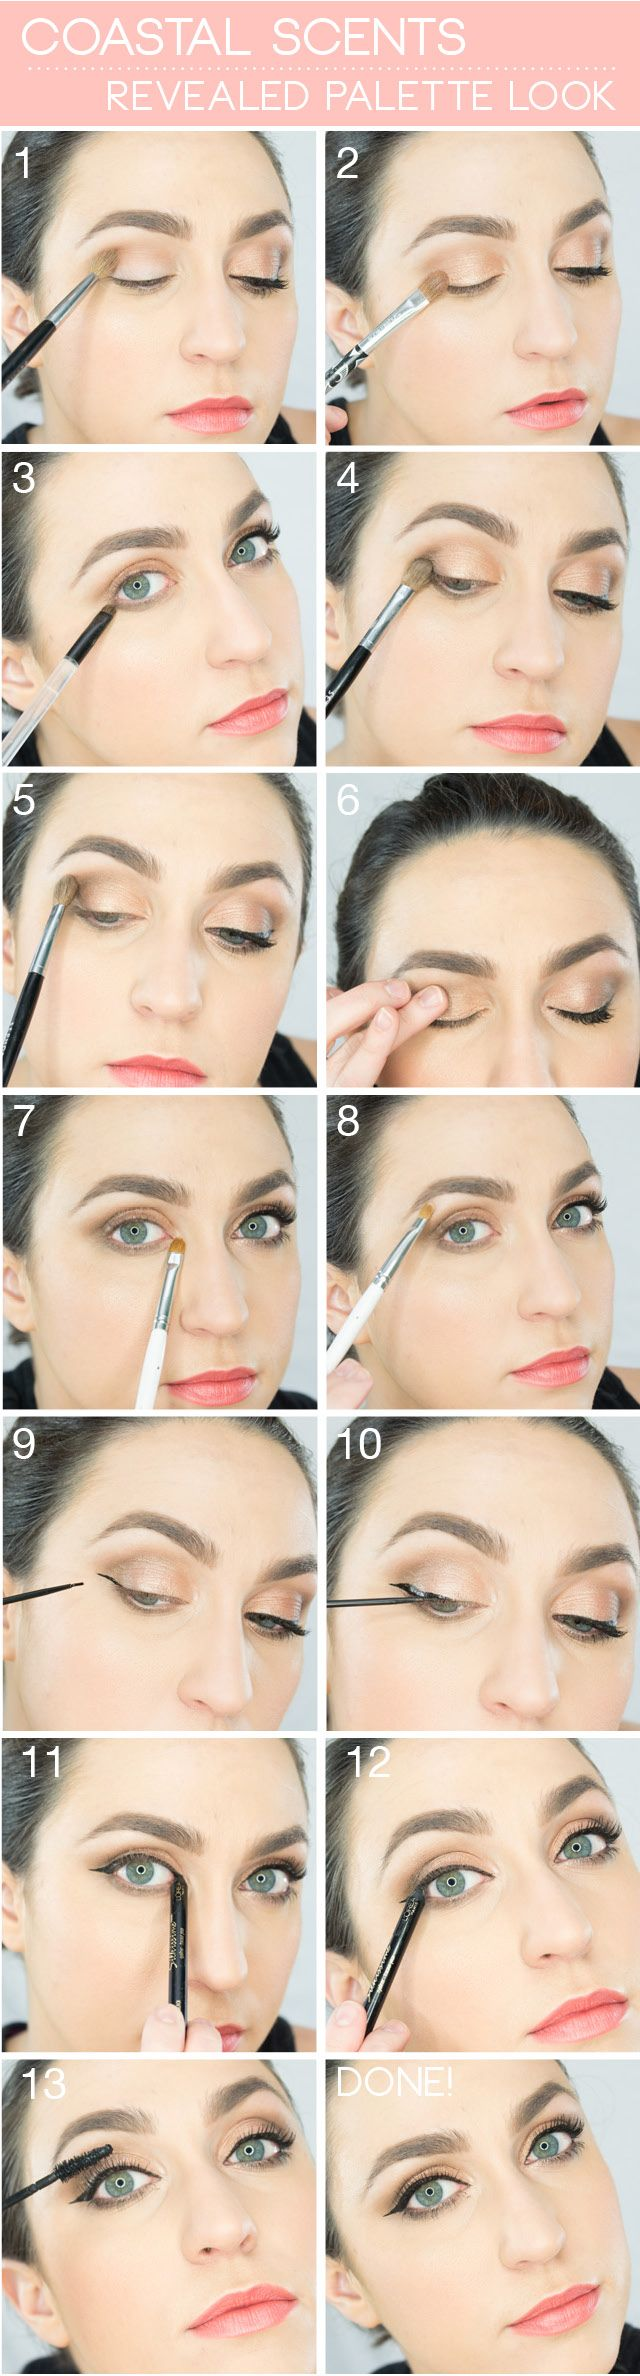 Natural glam look with Coastal Scents Revealed Palette. Wake Up For Makeup